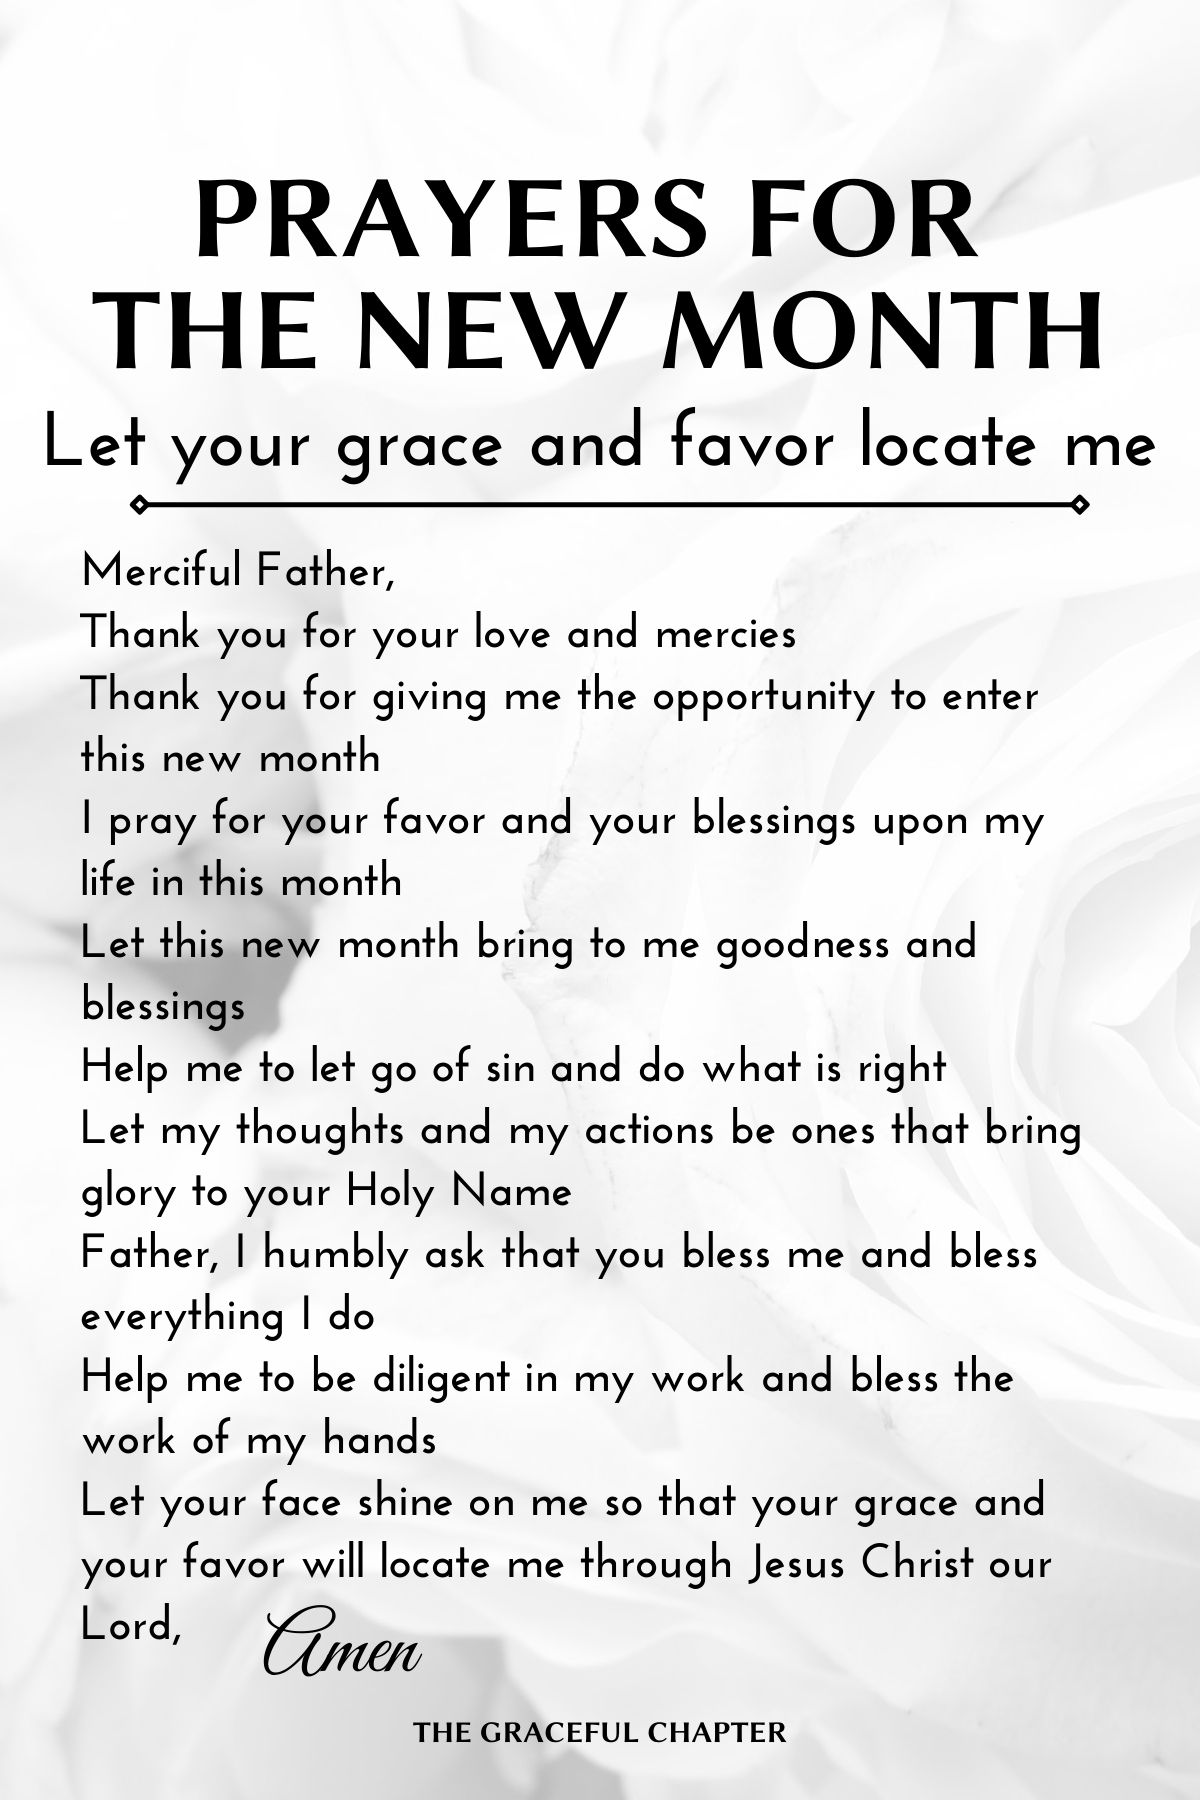 Prayers for the new month - Let your grace and favor locate me